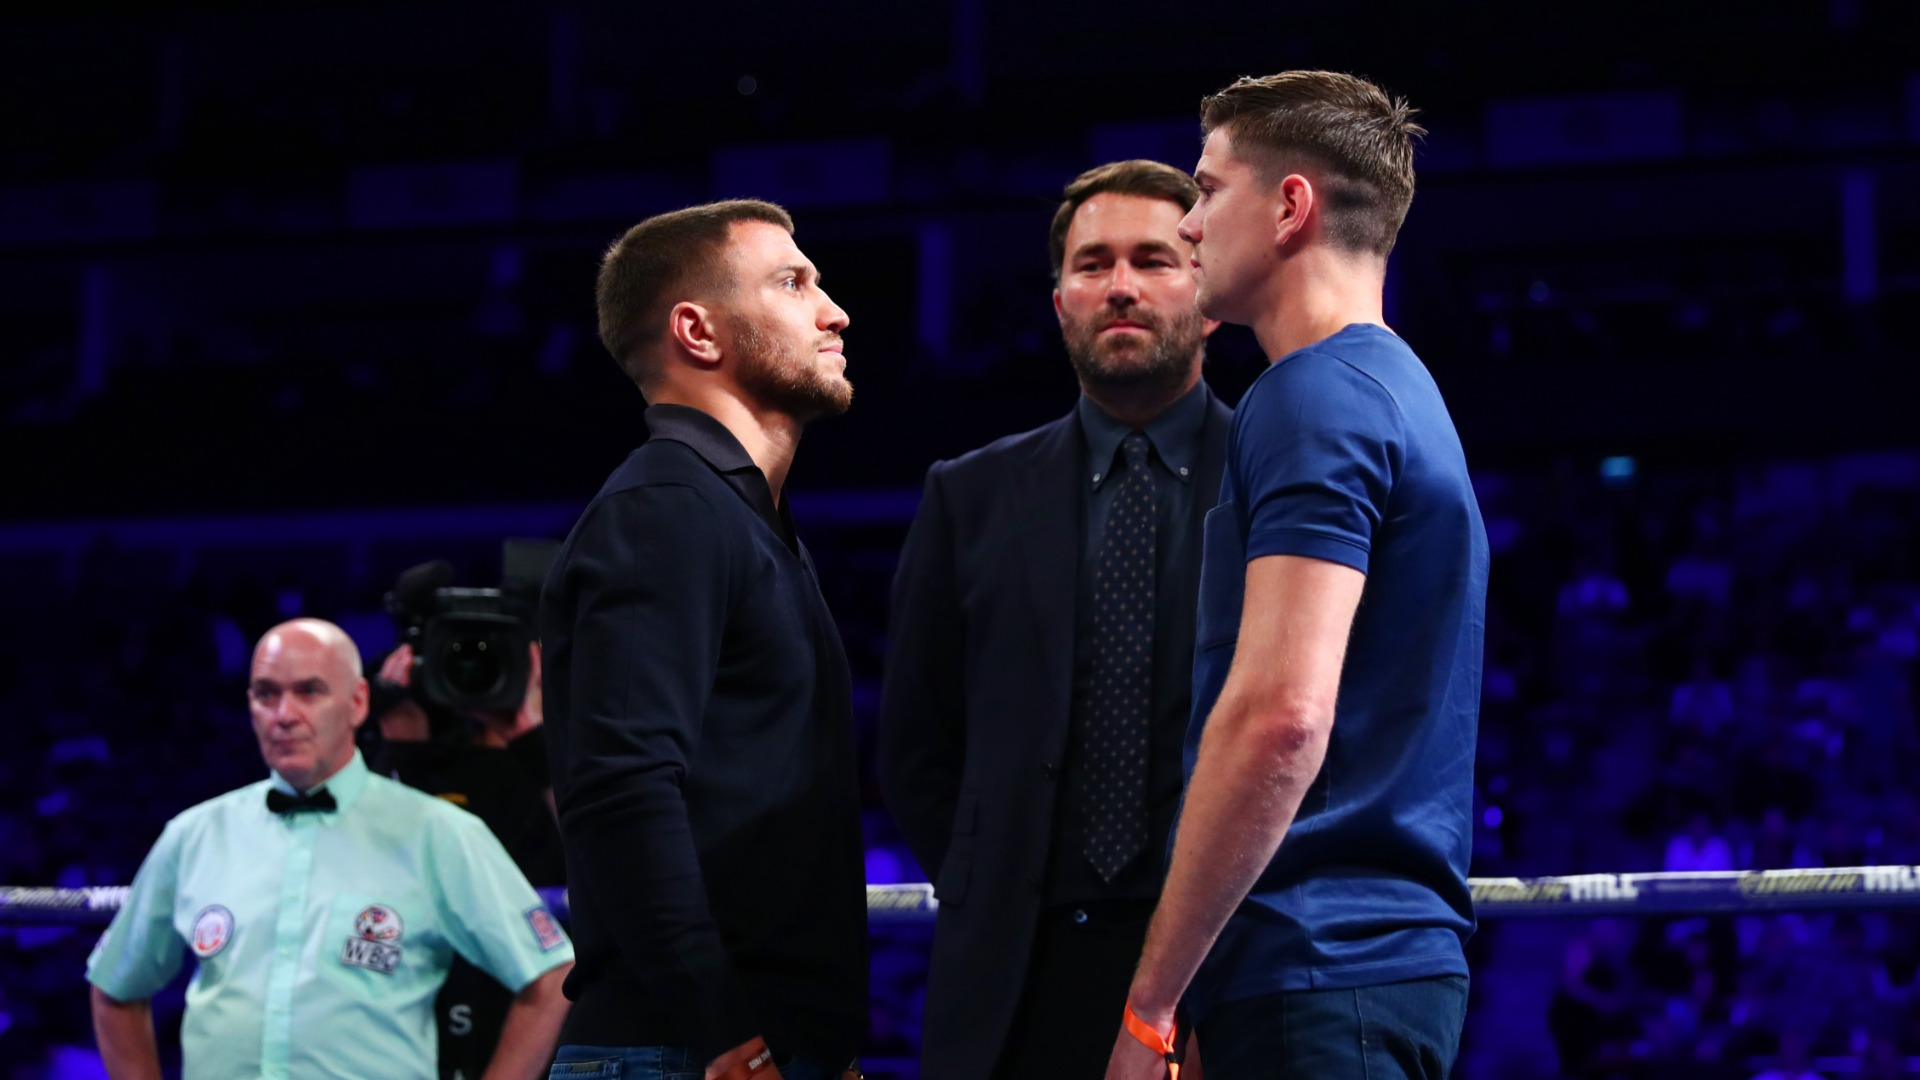 Luke Campbell confident of upsetting Vasyl Lomachenko: 'Every champion was once a challenger'